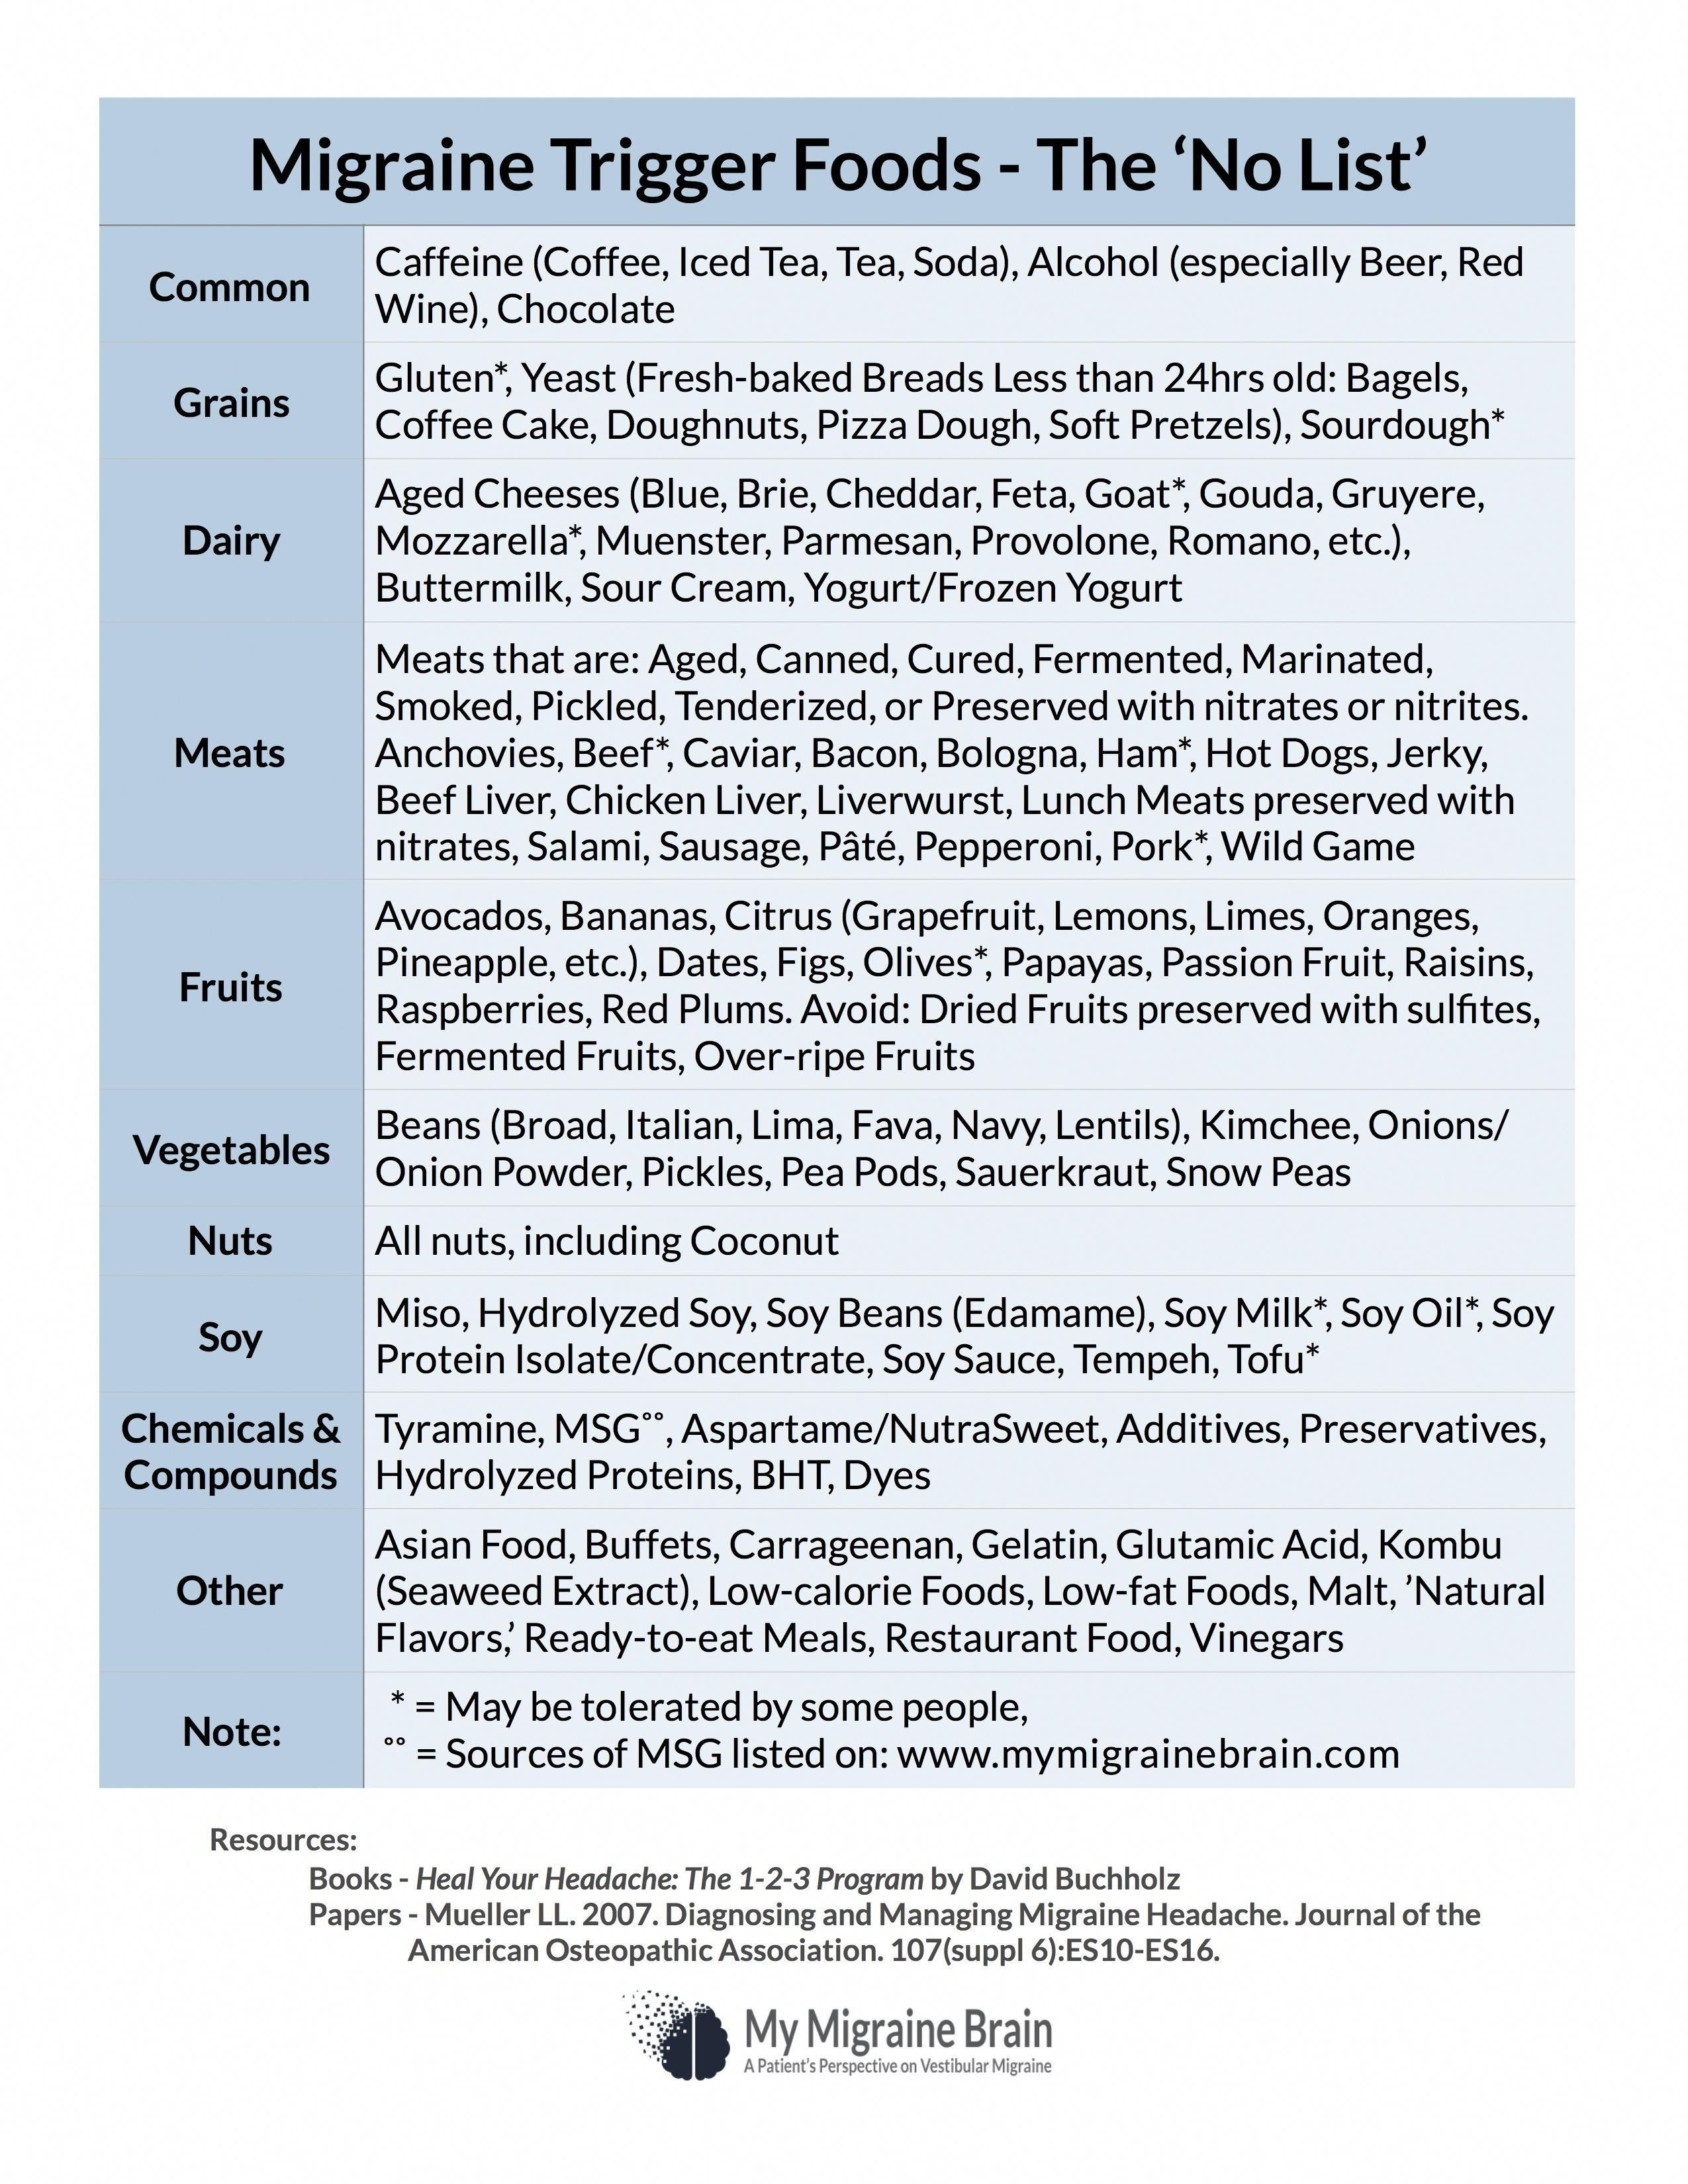 Migraine Trigger Foods Handout A List Of Foods That Are Considered To Be Potential Migraine Trig In 2020 Migraine Trigger Foods Migraine Triggers Foods For Migraines